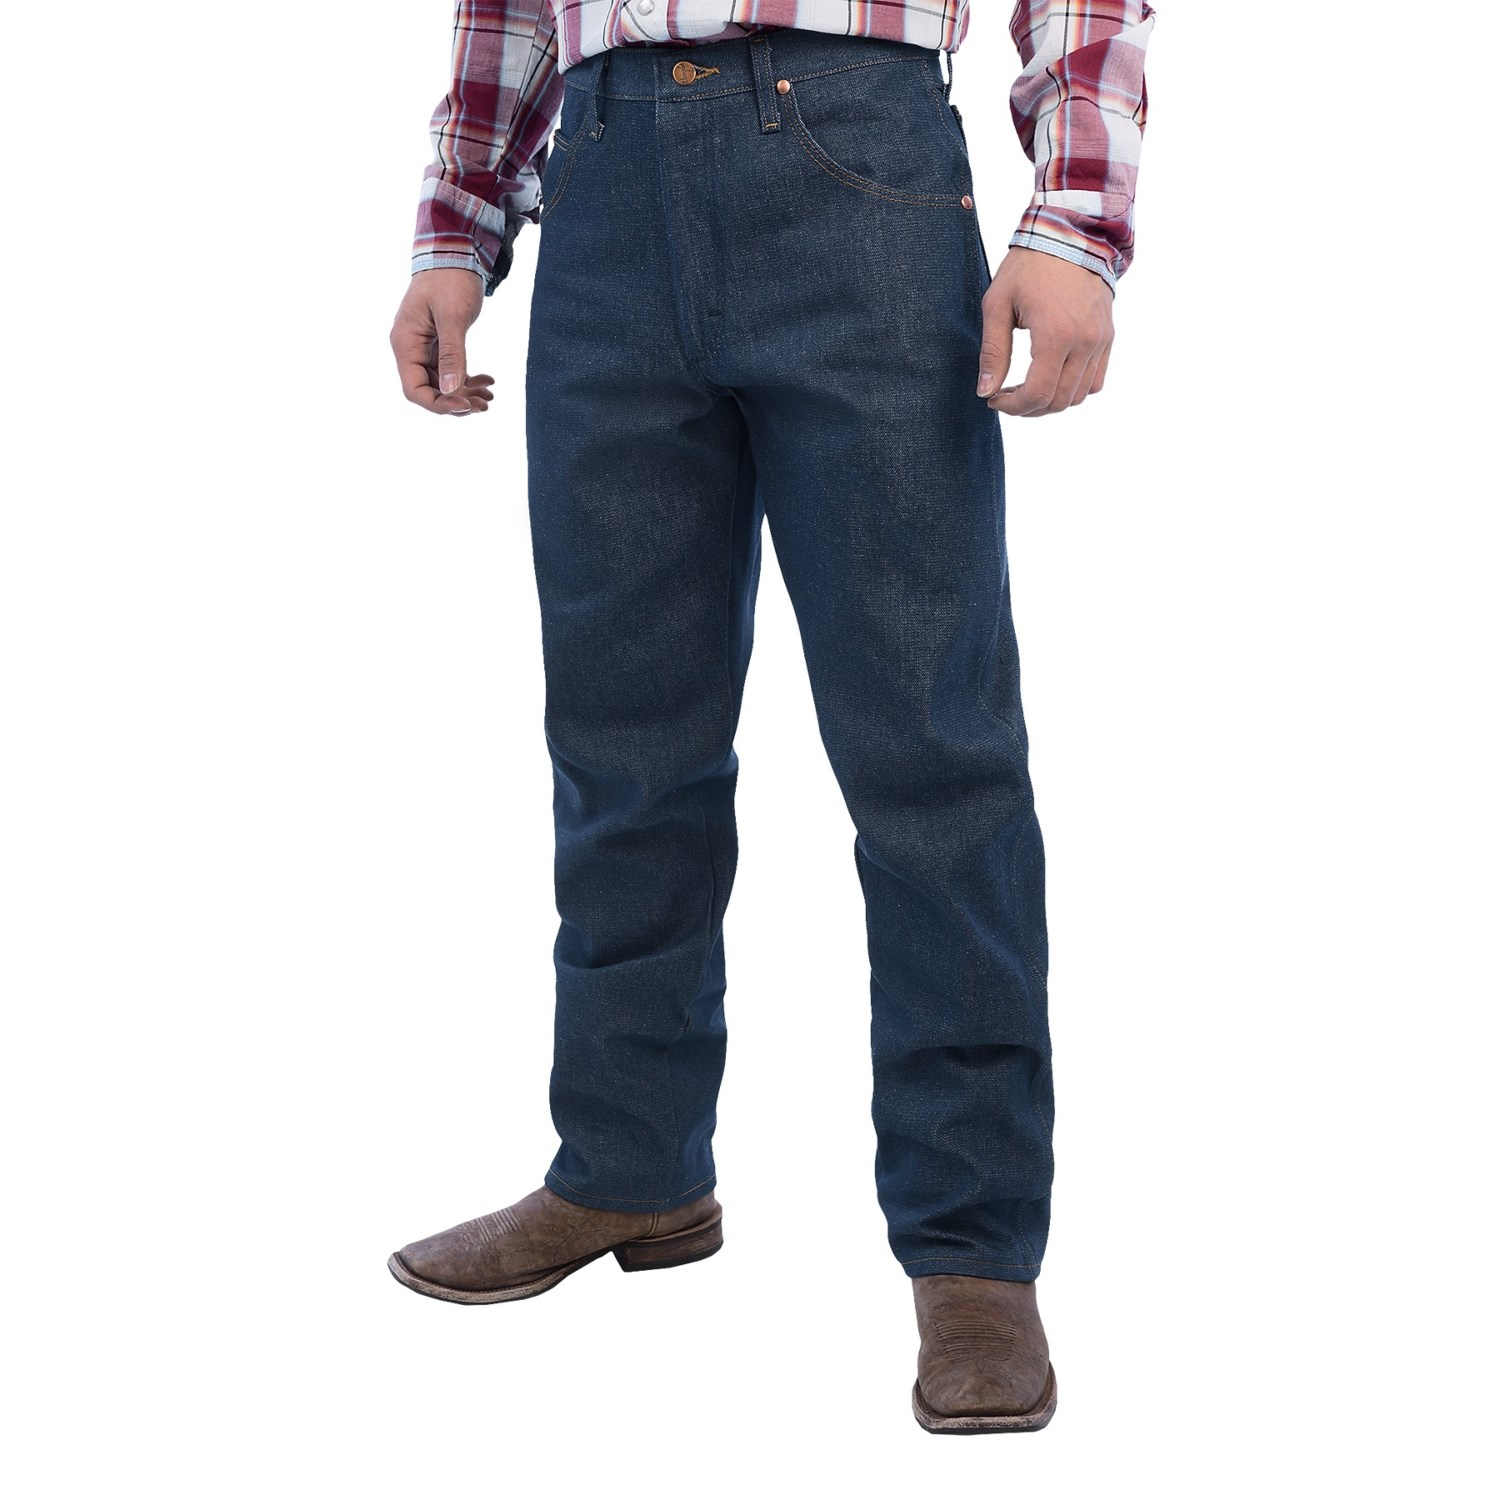 Wrangler Cowboy Cut Relaxed Fit Jeans For Men Save 42